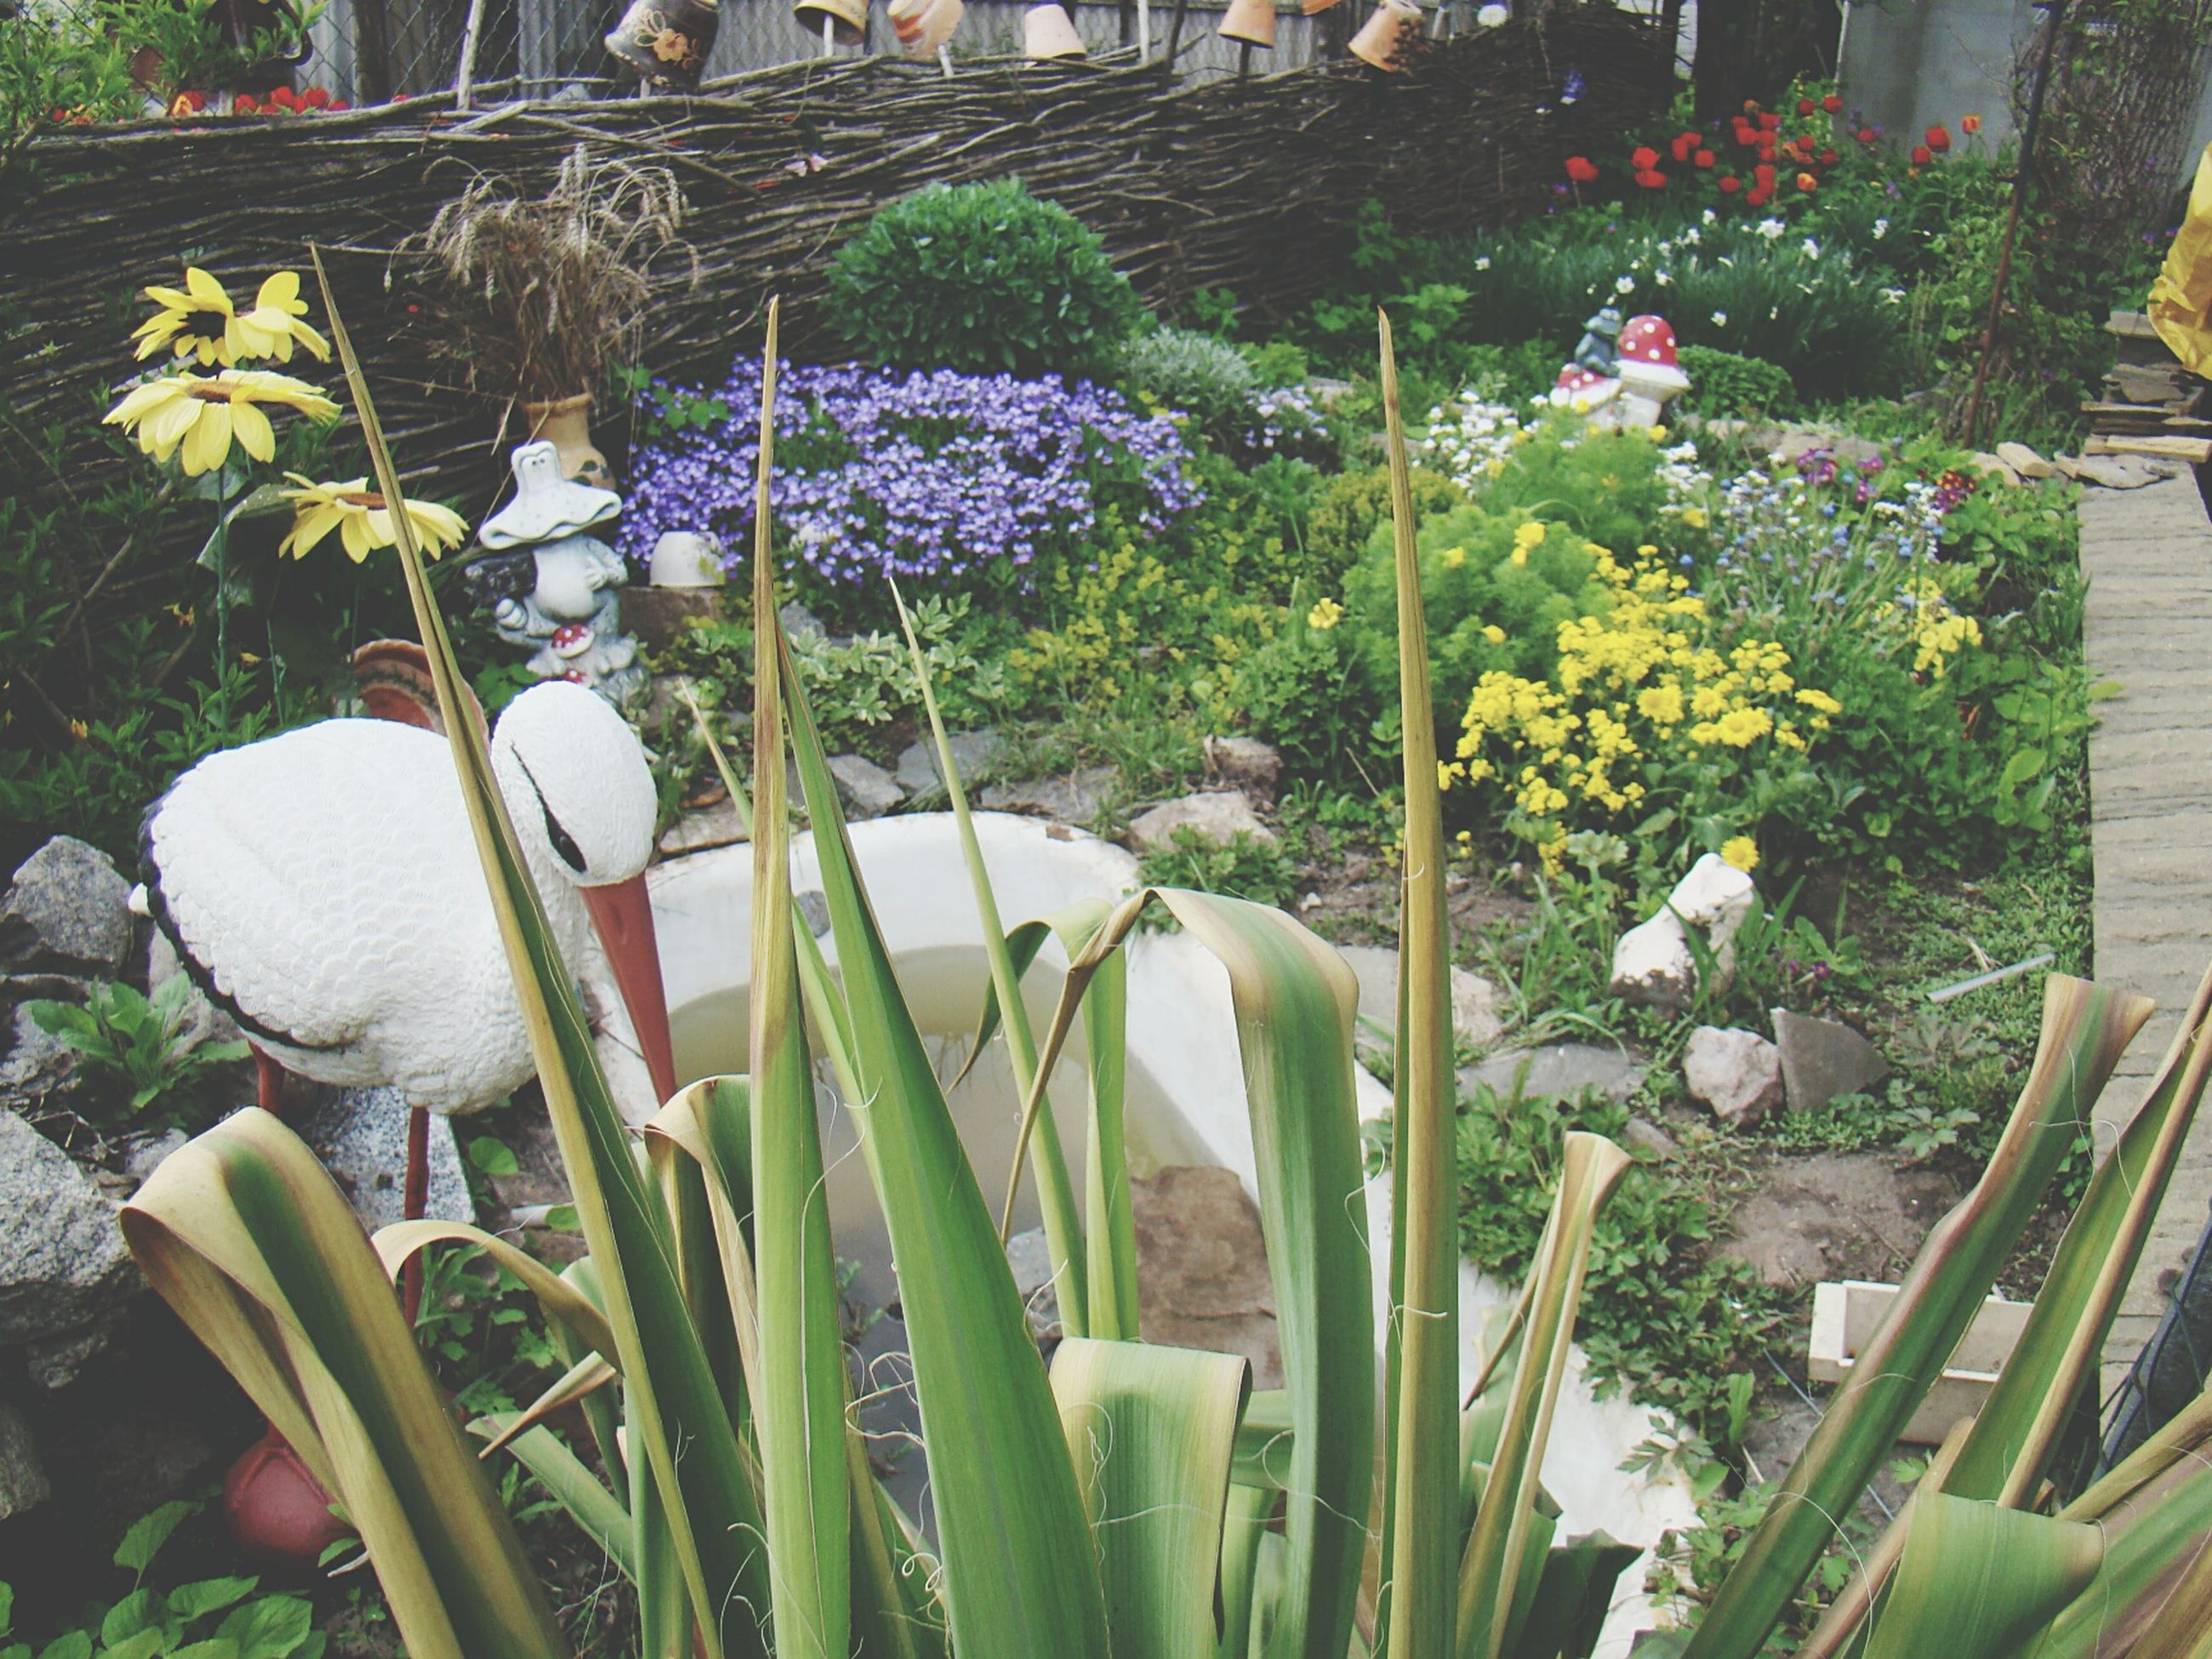 flower, plant, growth, fragility, freshness, petal, nature, beauty in nature, blooming, white color, flower head, potted plant, leaf, in bloom, day, no people, front or back yard, outdoors, park - man made space, green color